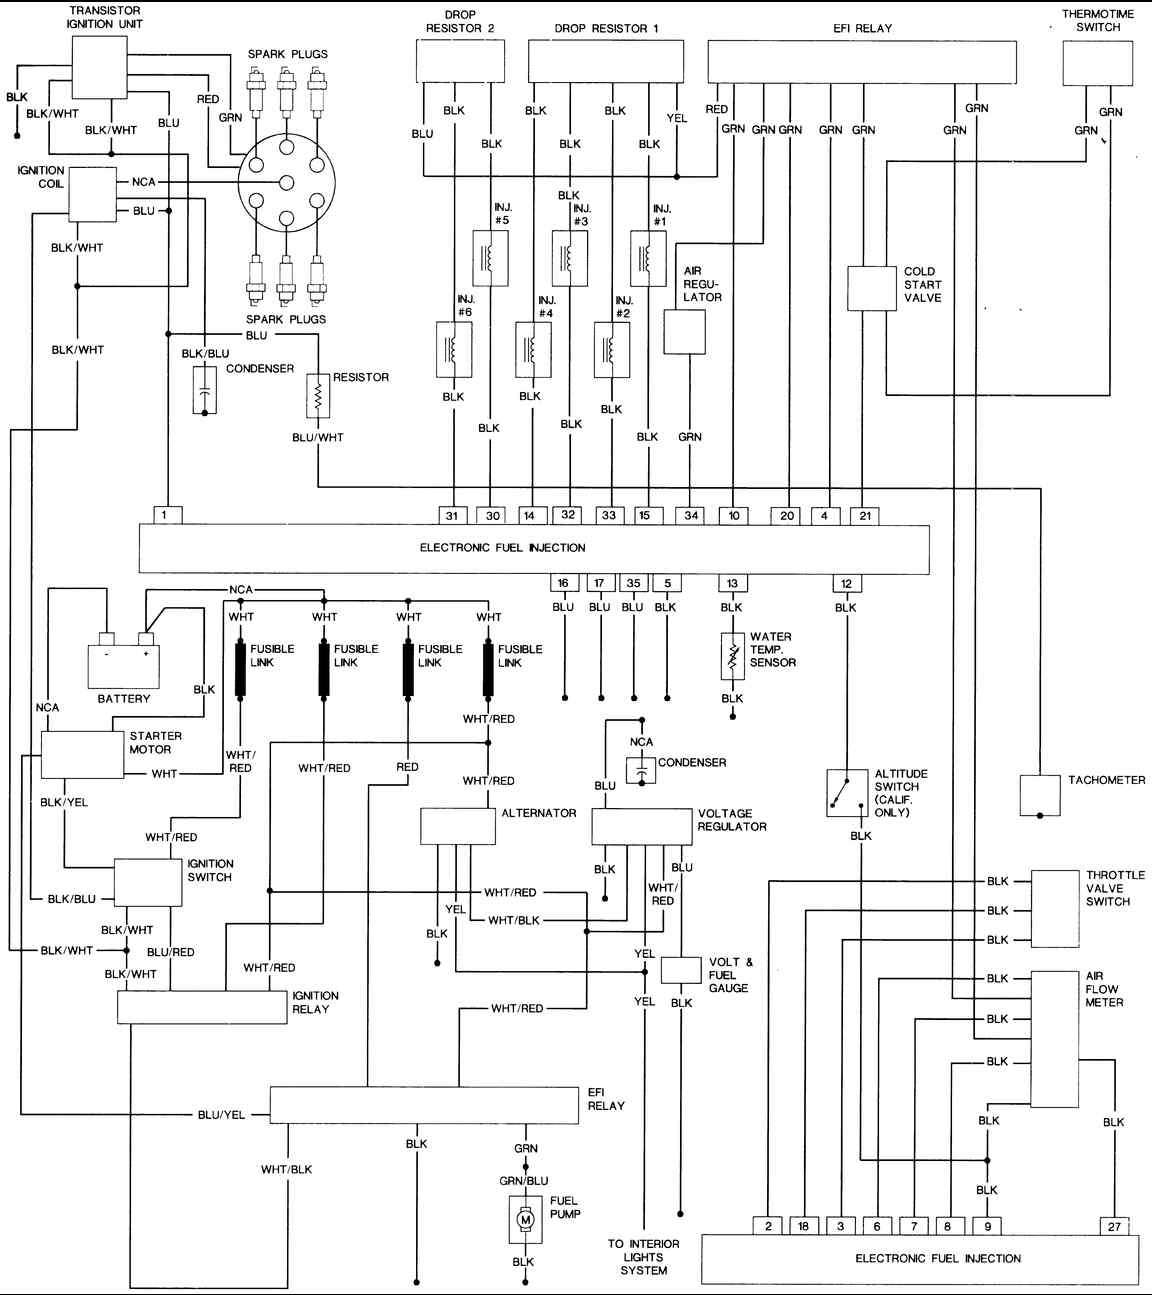 1977 Datsun 280z Iginition Wiring Diagram